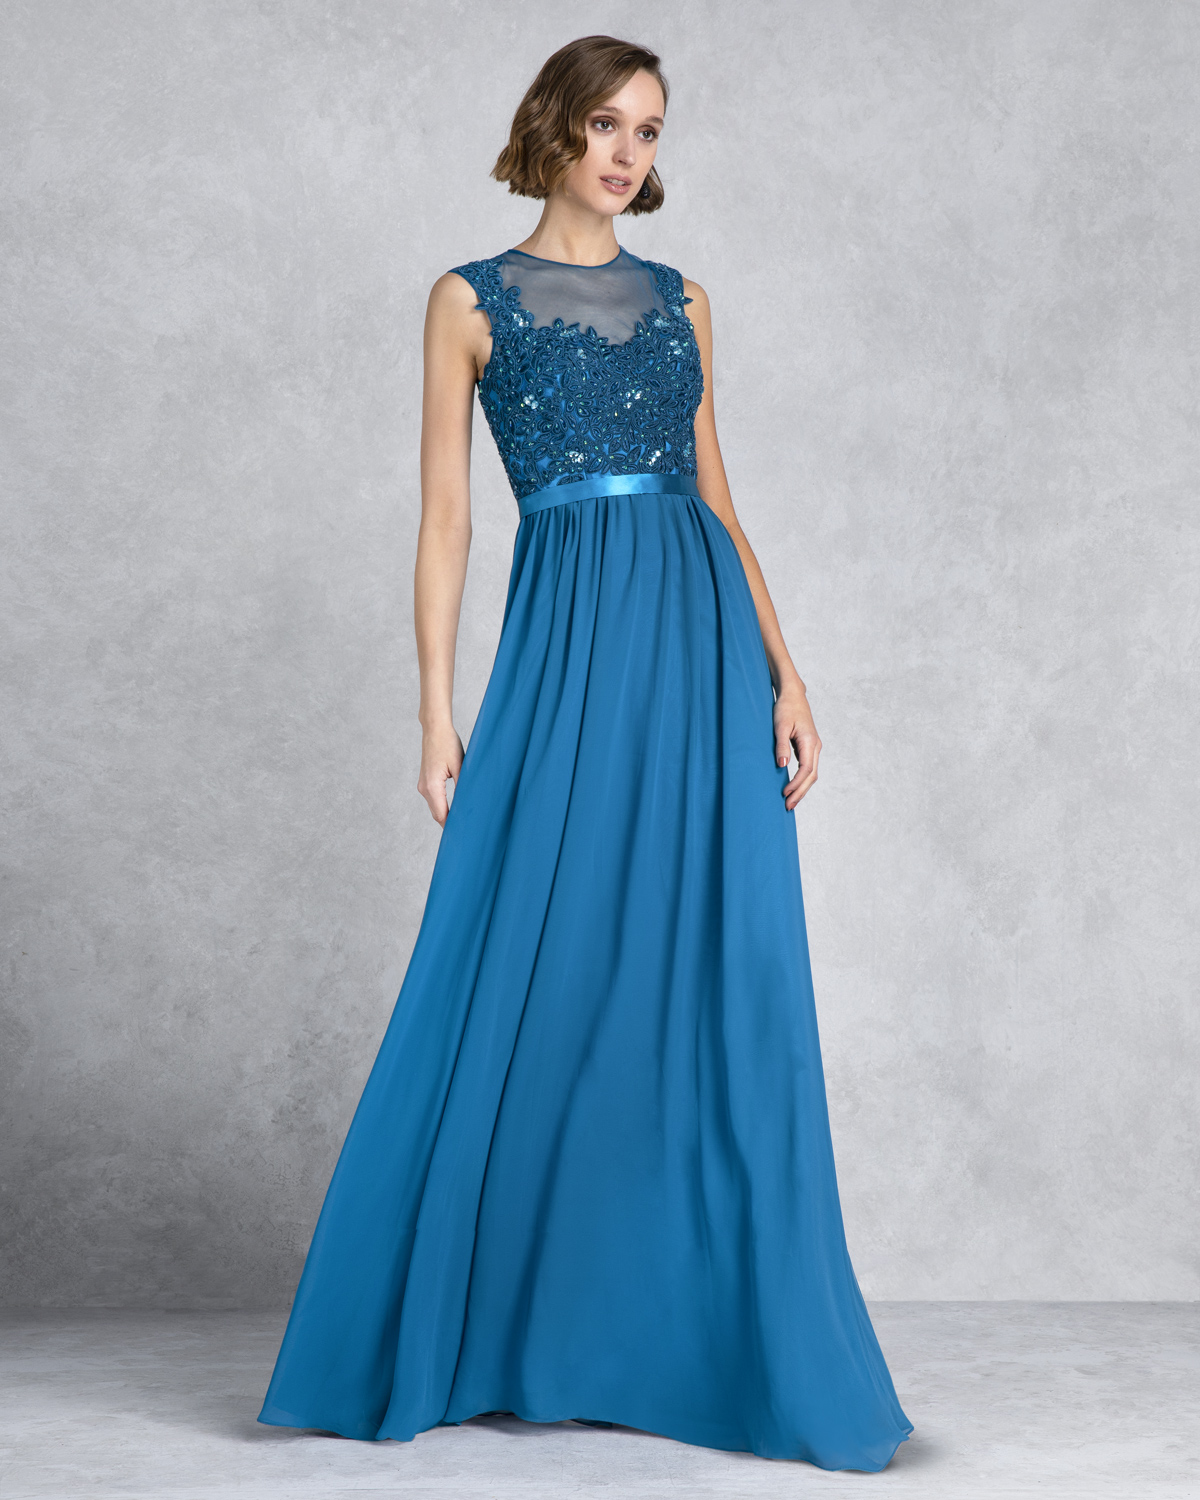 Classic Dresses / Long evening dress with lace on the top and chifon skirt